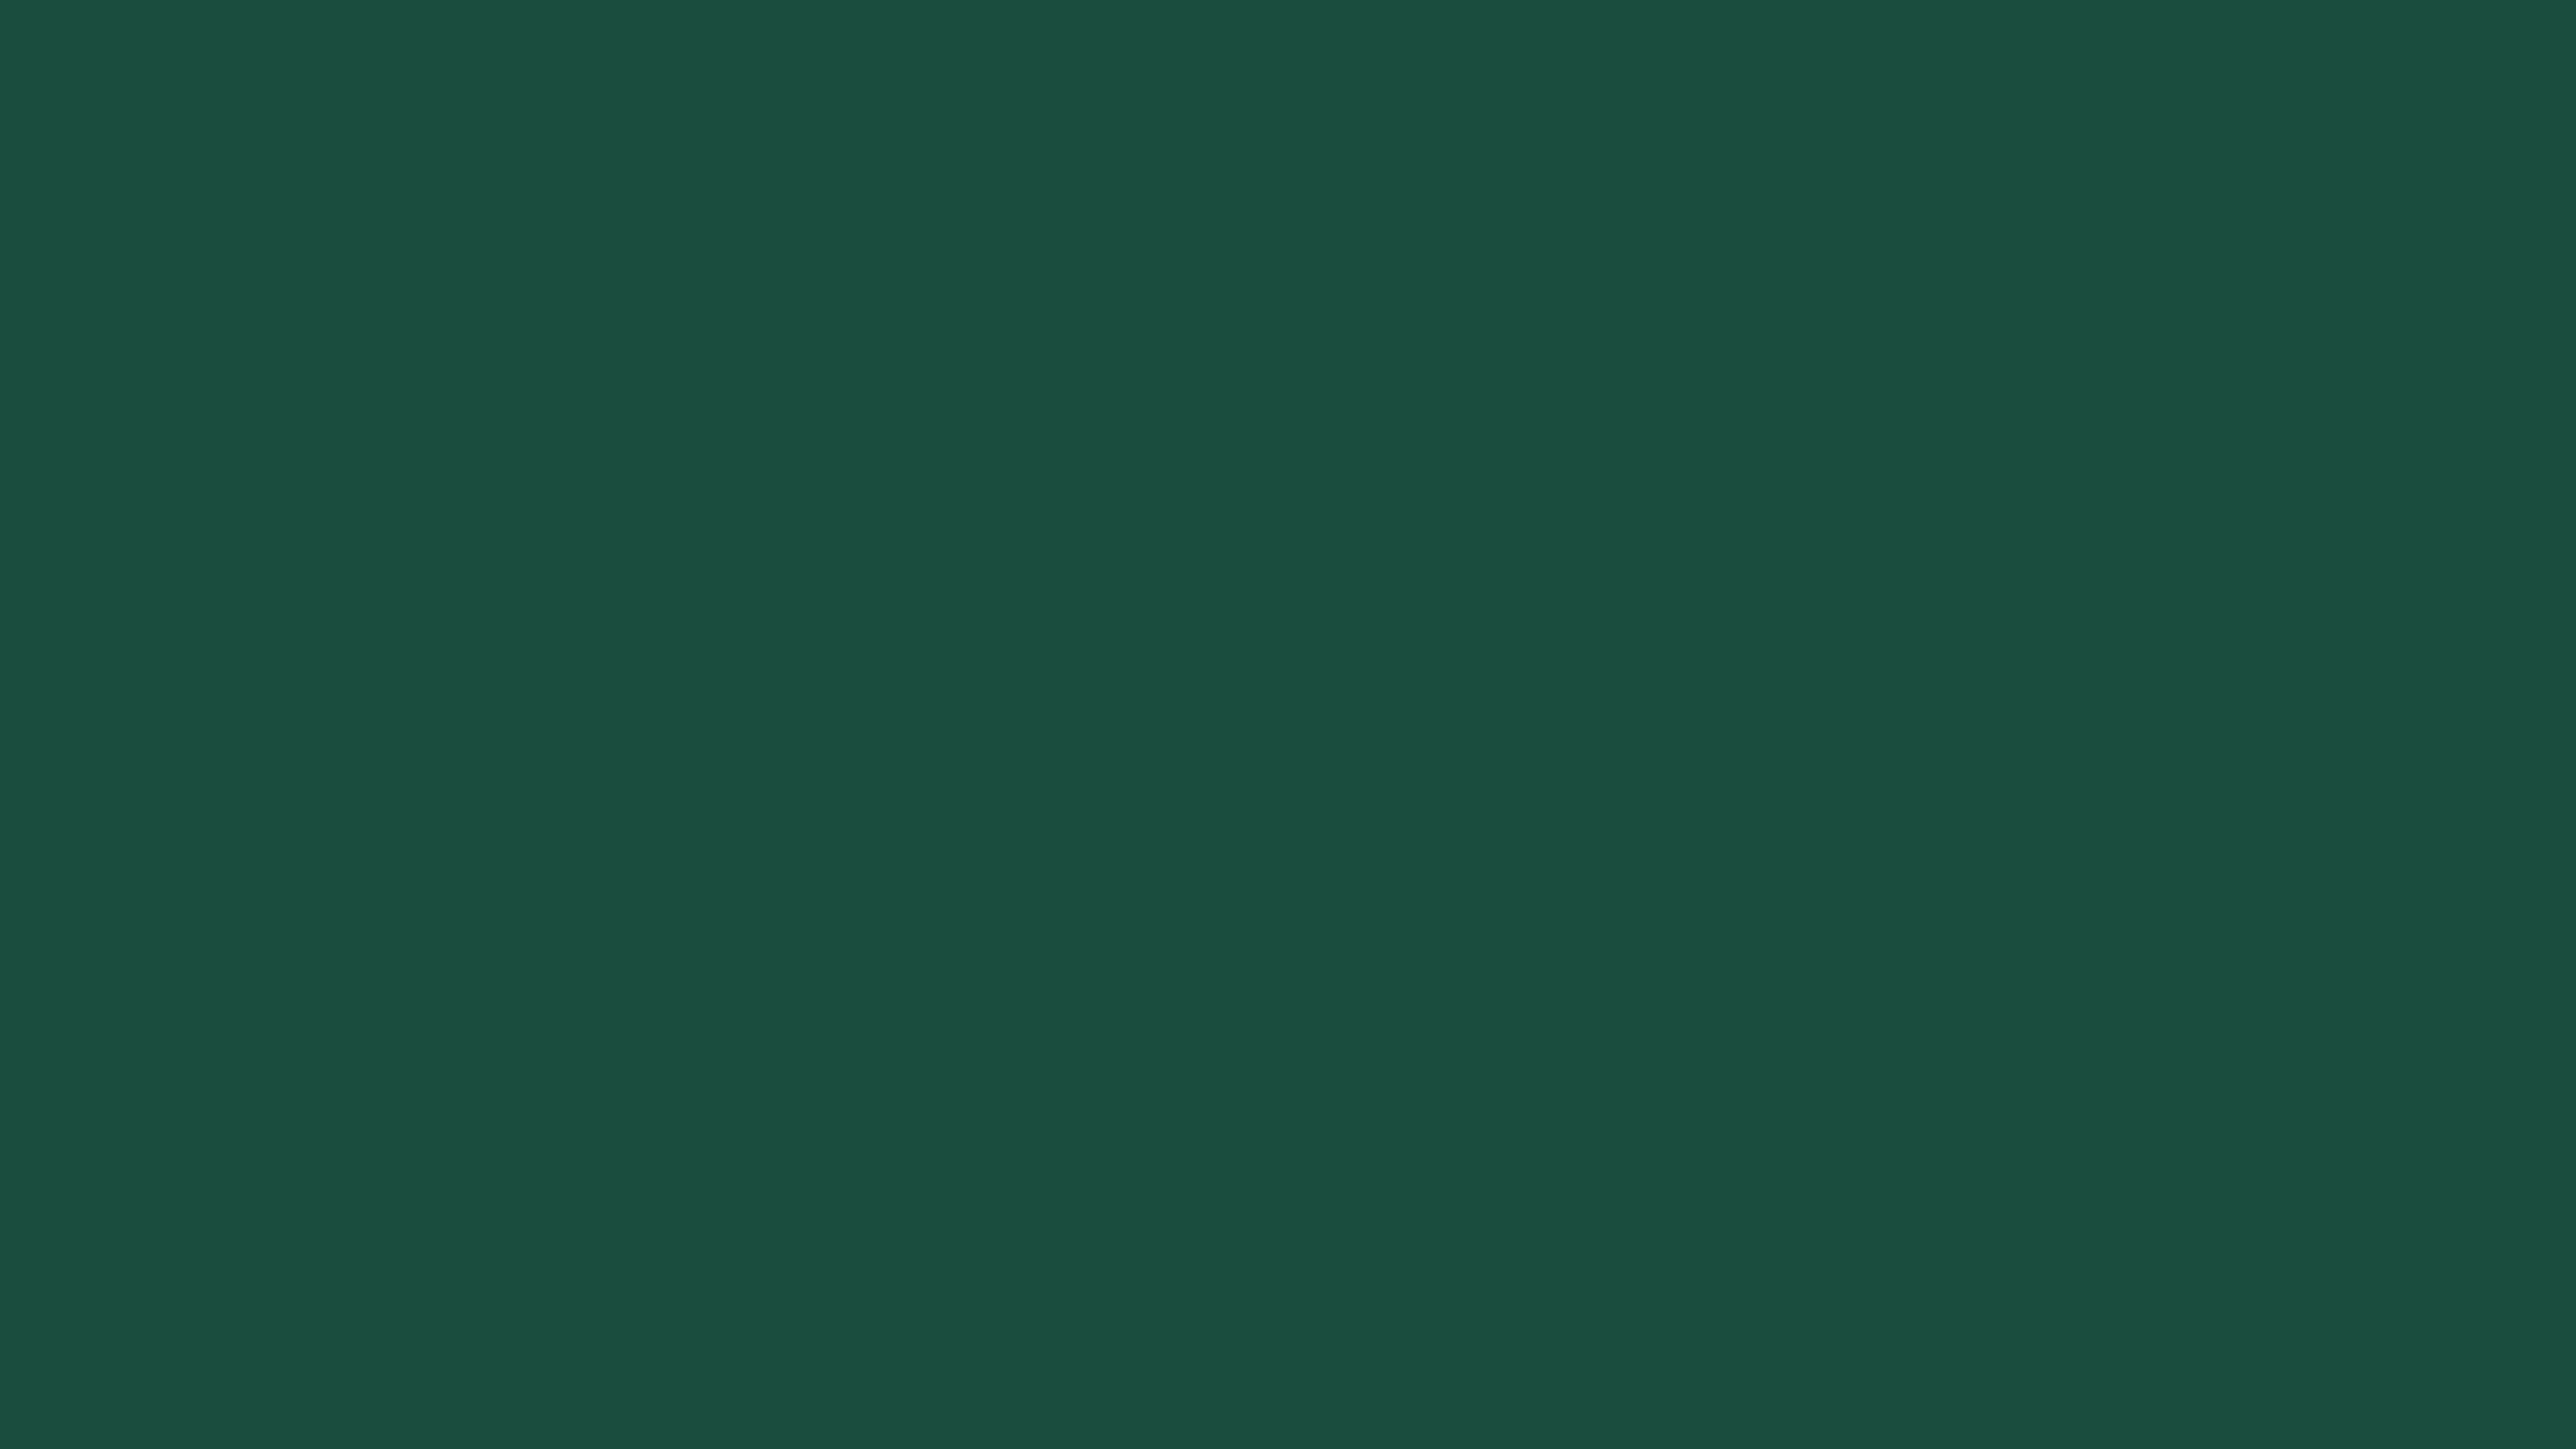 5120x2880 Brunswick Green Solid Color Background